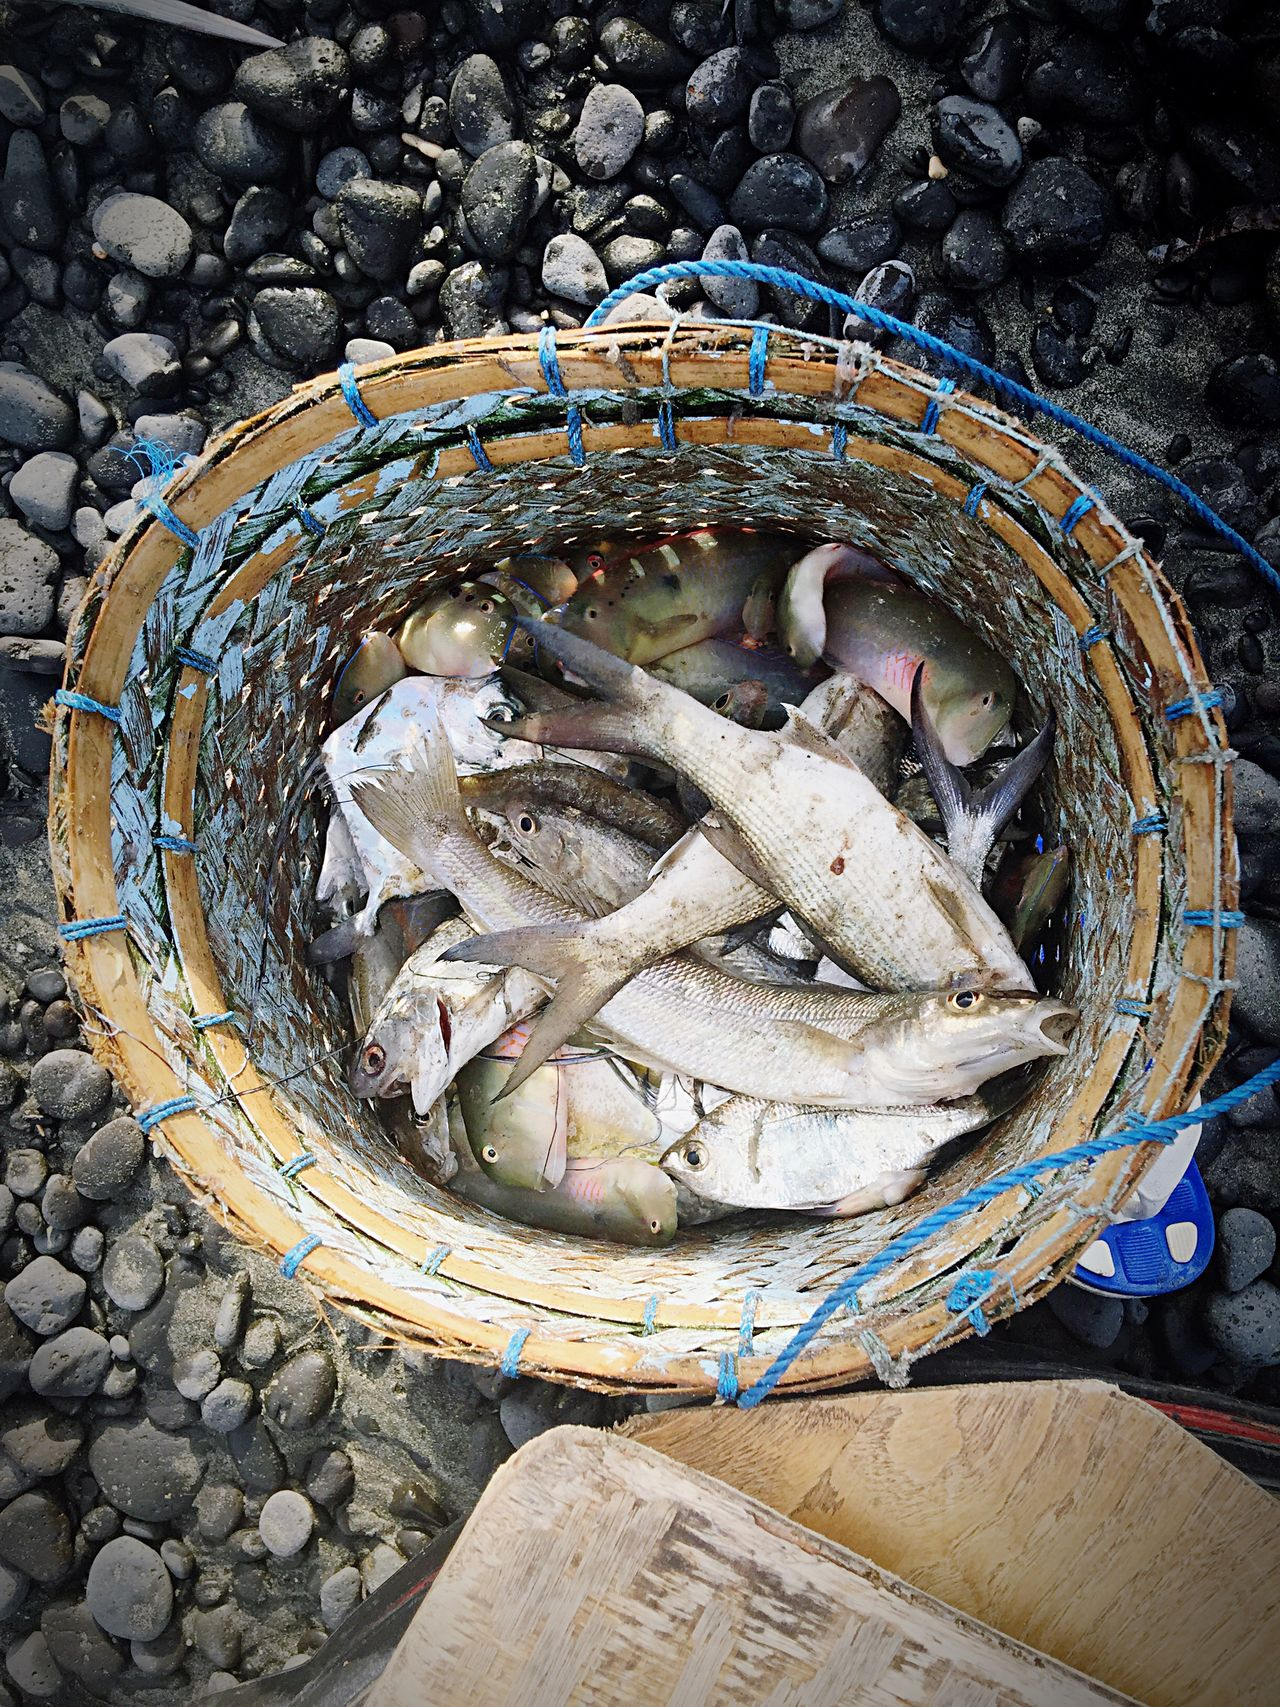 See whats the catch this morning of the Bali's fisherman! Bali Bali, Indonesia Candidasa Bali Candidasa Fish Fishing Traditional Beach Top View Fromabove Bucket Variation IPhoneography IPhone Iphone6